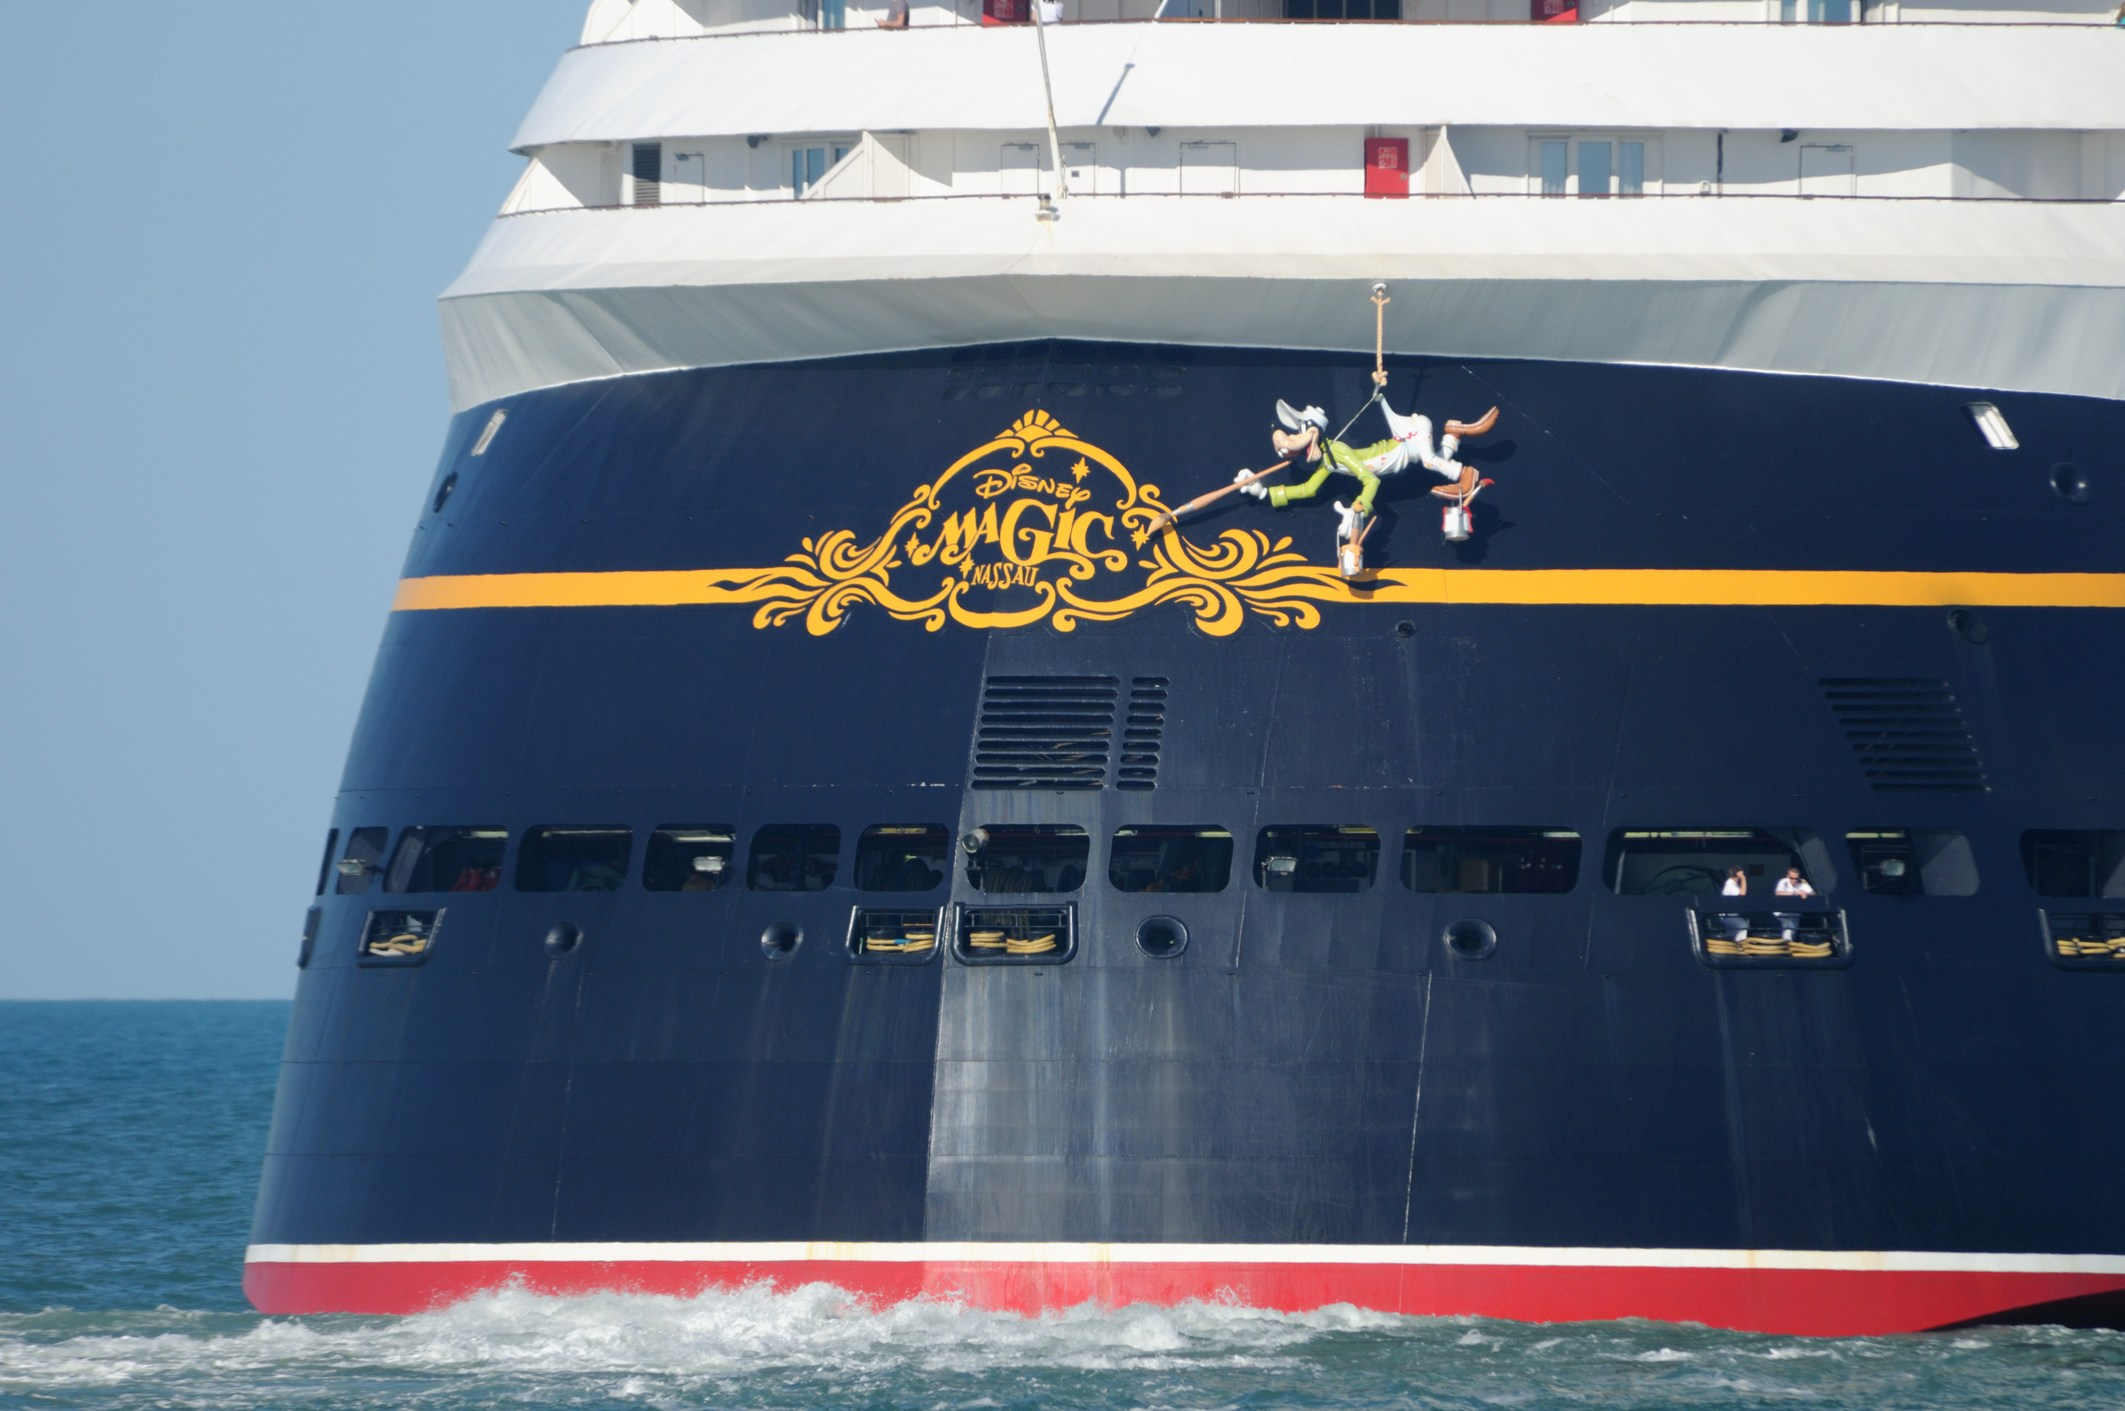 Disney Magic Cruise ship